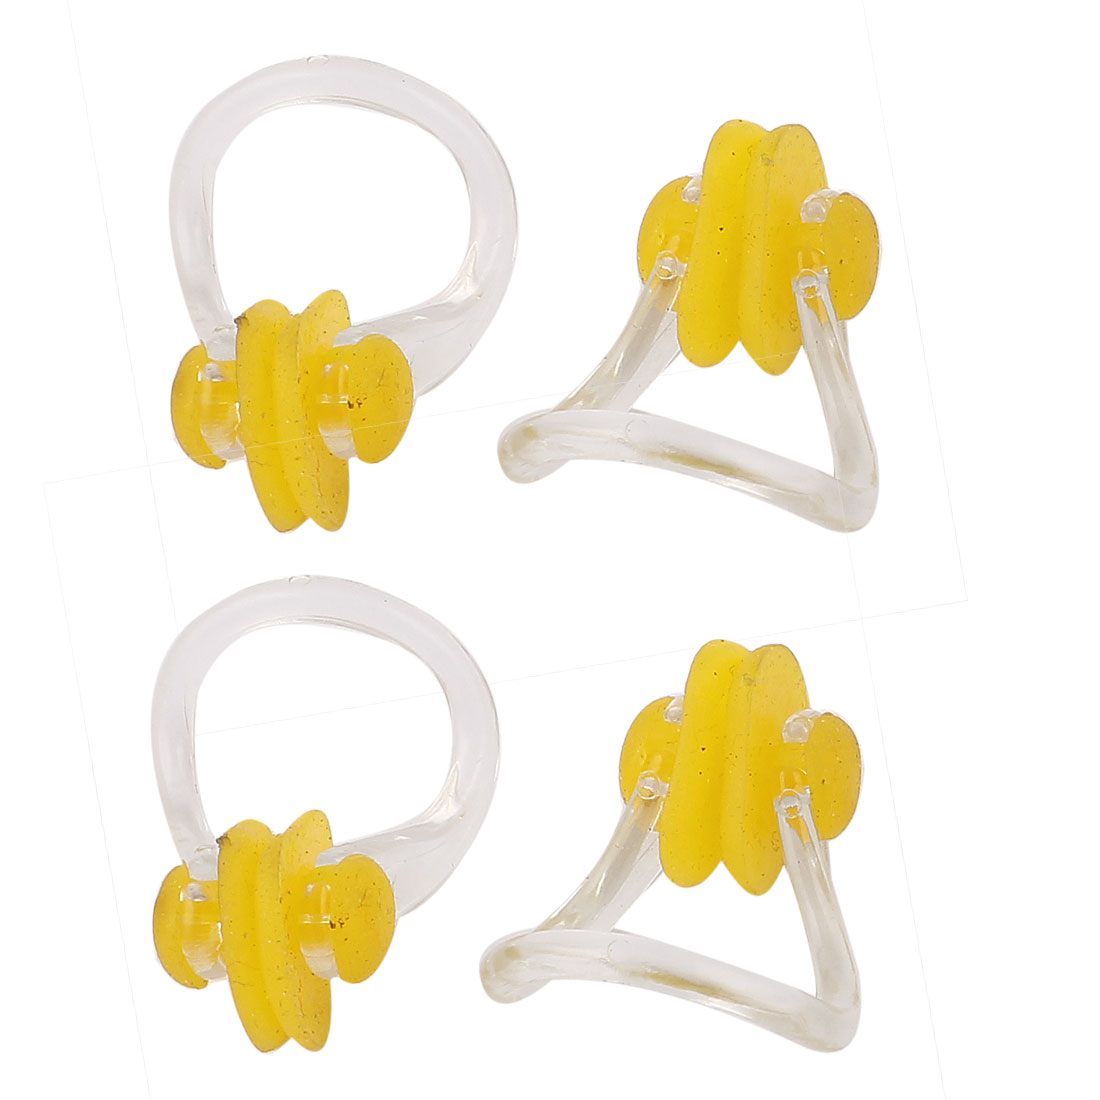 4pcs Clear Plastic Frame Swim Learning Training Swimming Noseclip Nose Clip